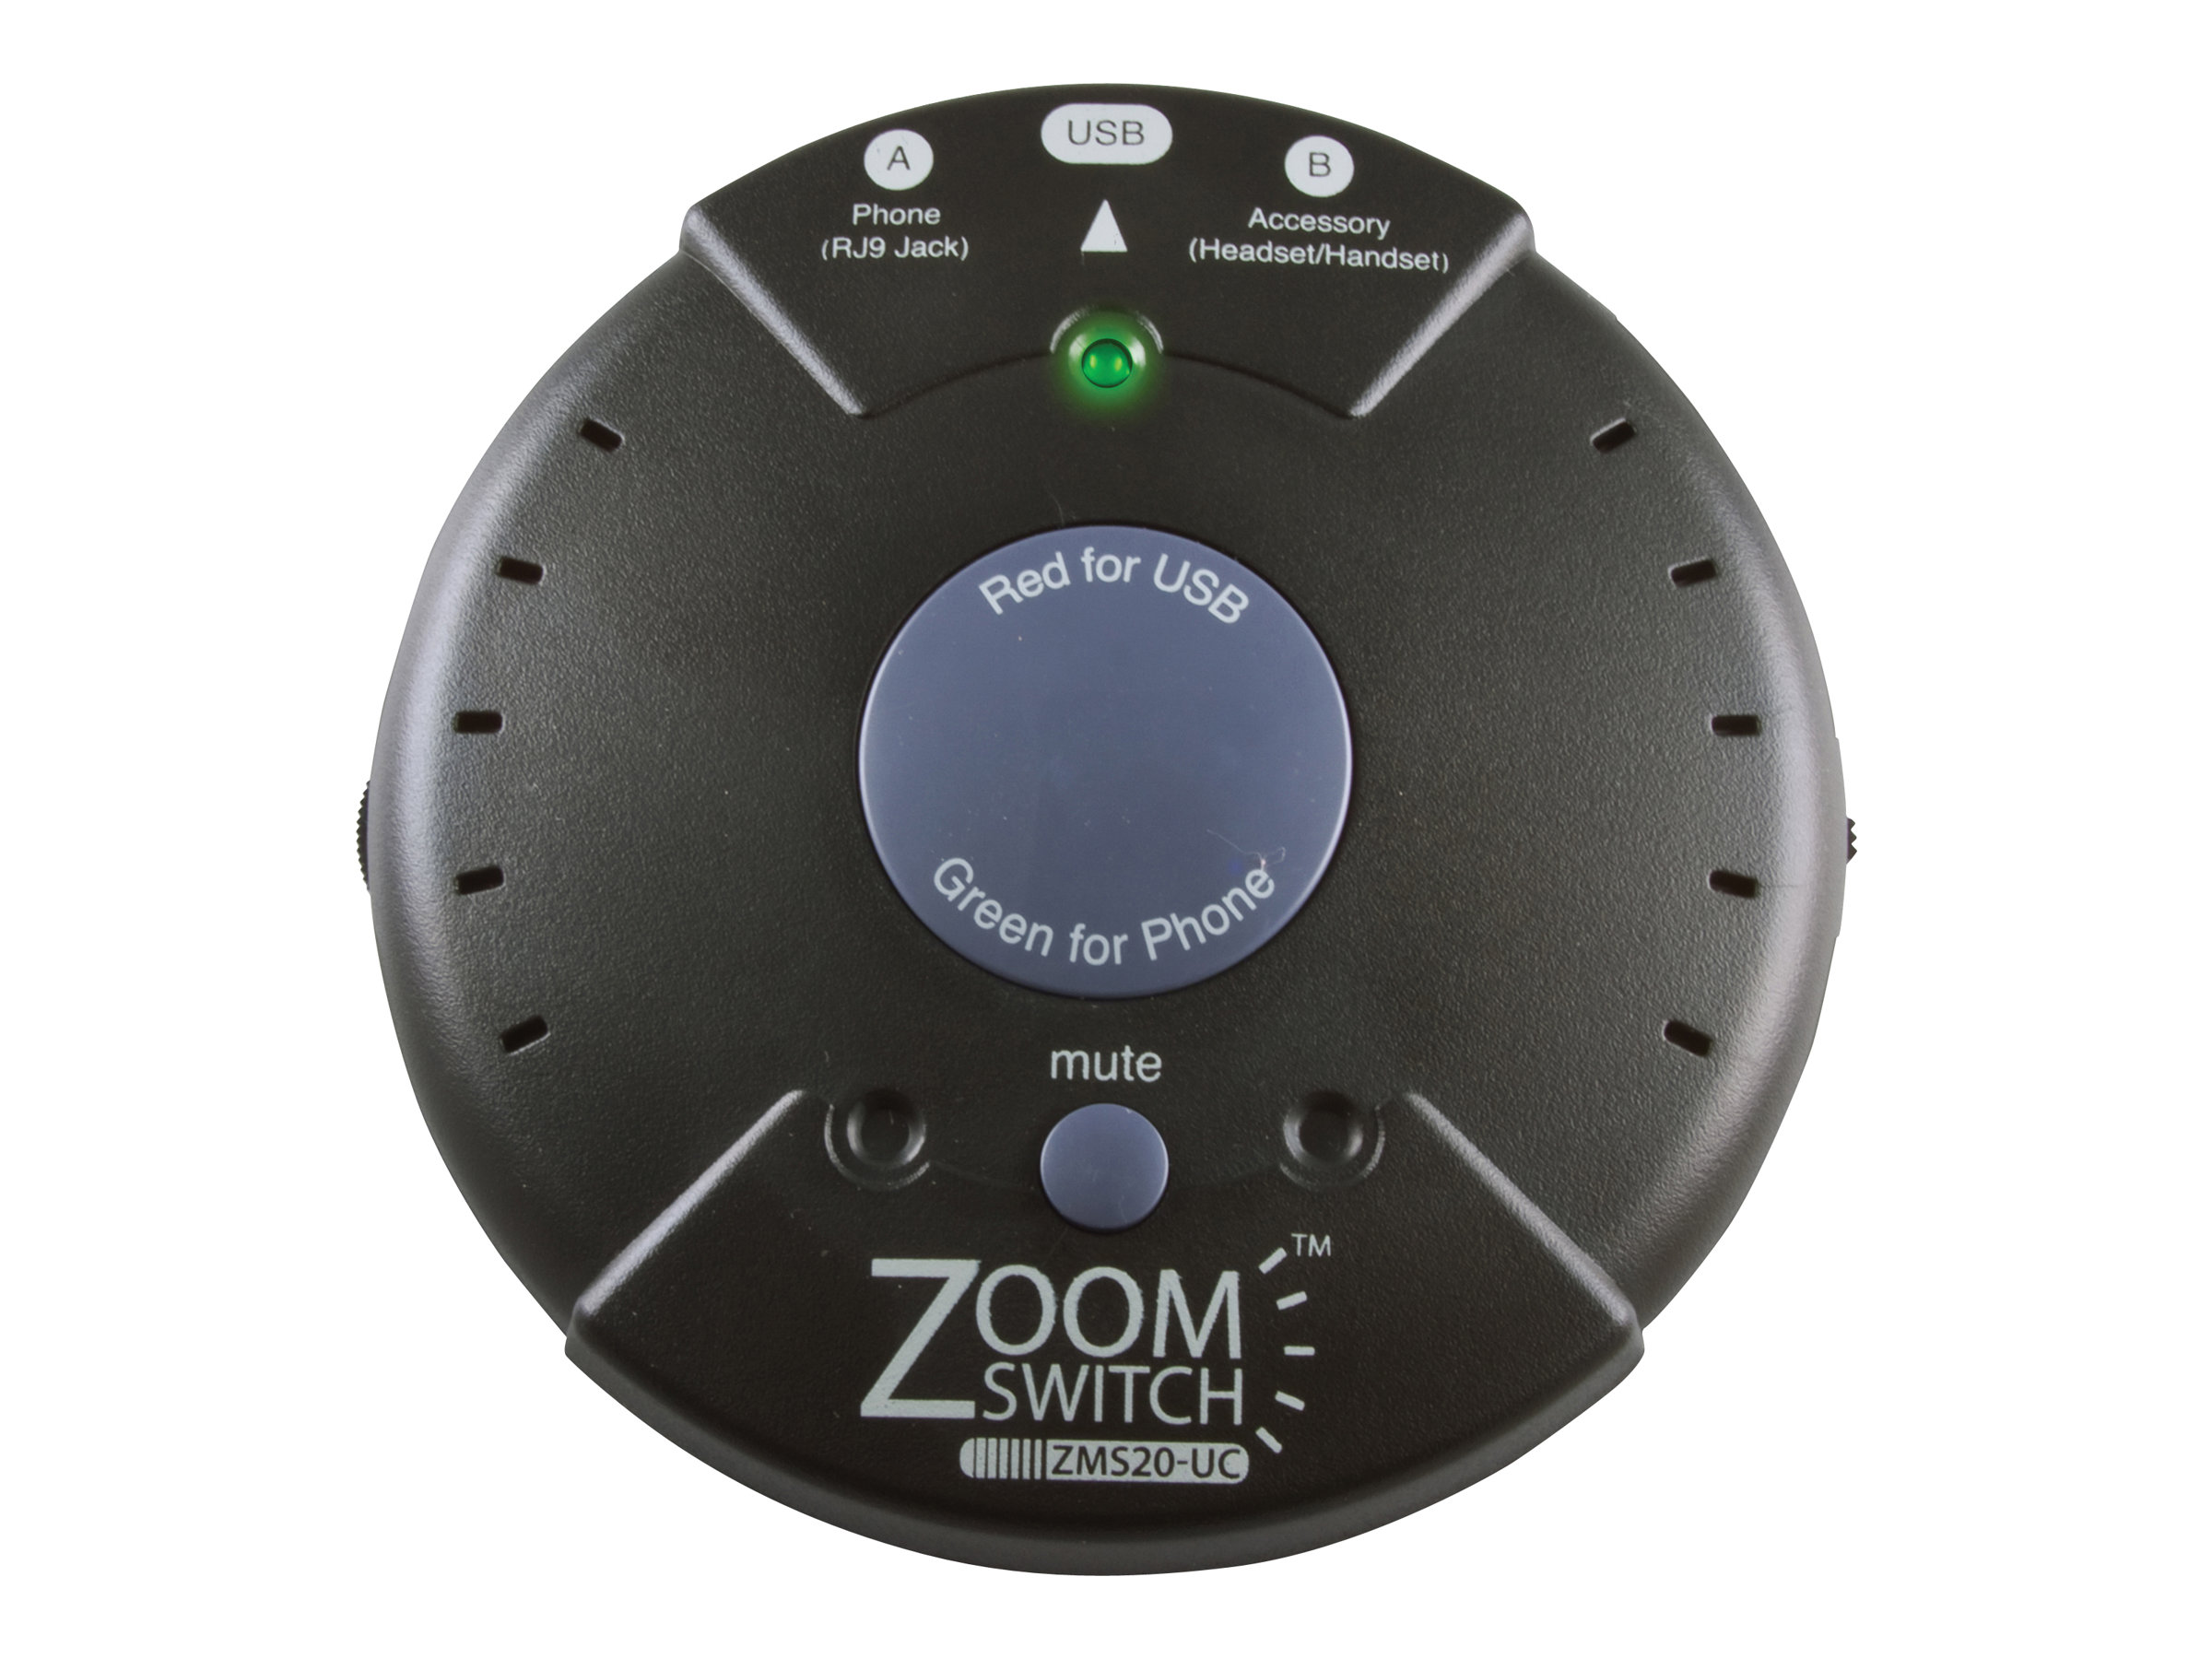 ZoomSwitch ZMS20-UC - handset/headset switch